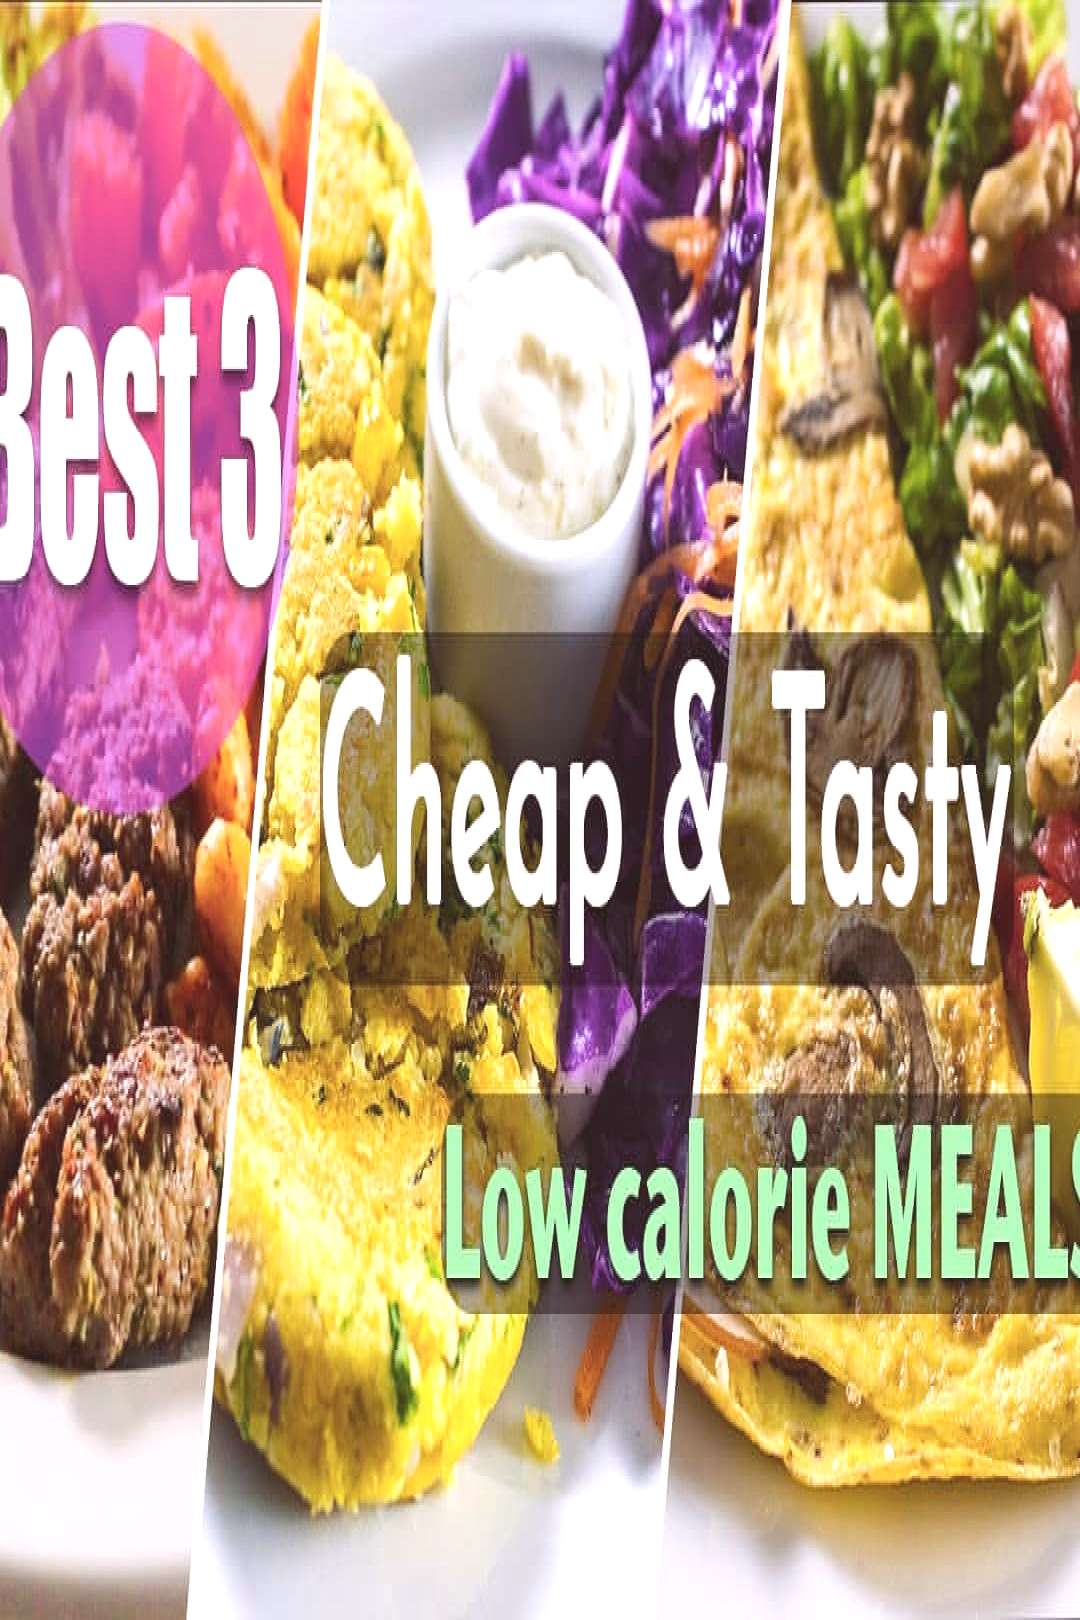 food possible text that says et 3 Cheap Tasty Low calorie MEAL